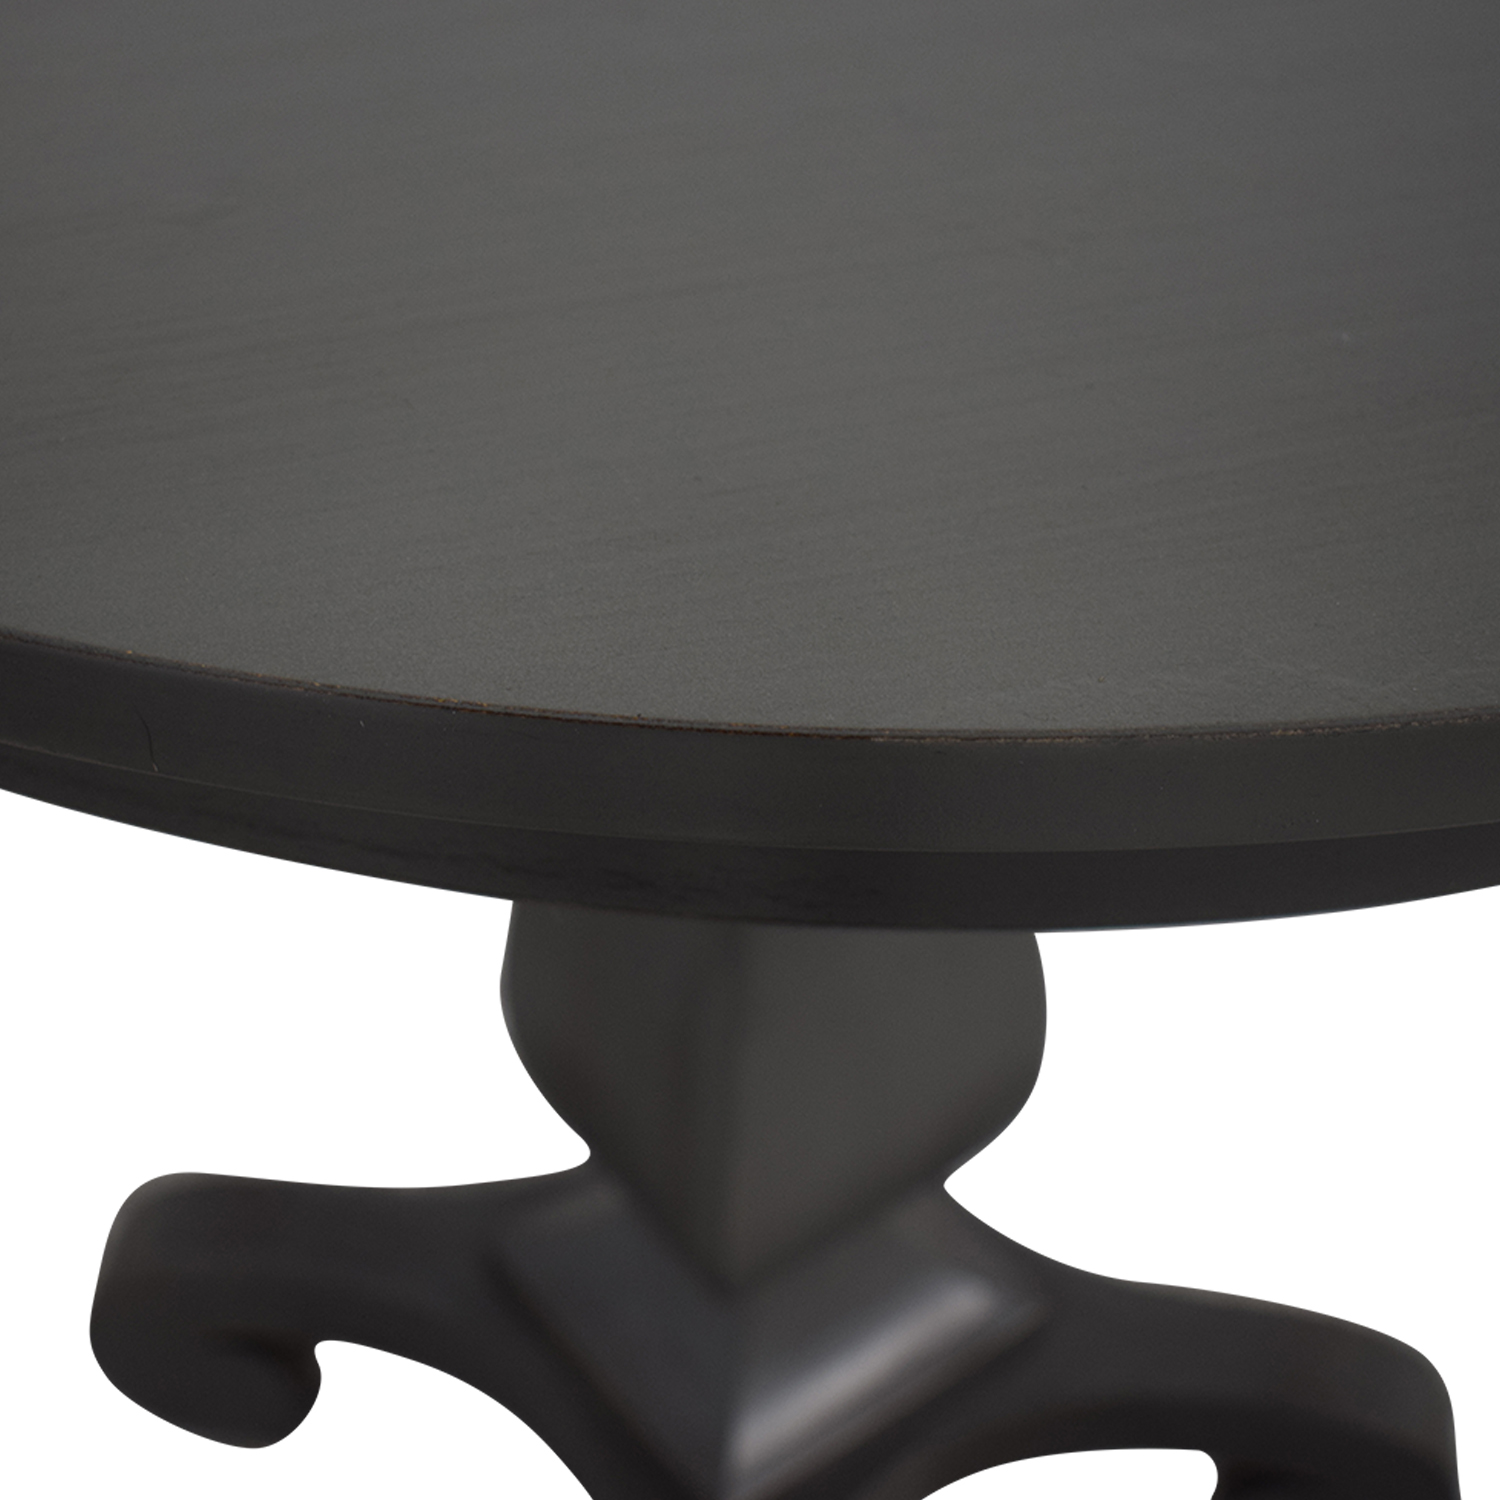 Pier 1 Pier 1 Grey Round Accent Table discount